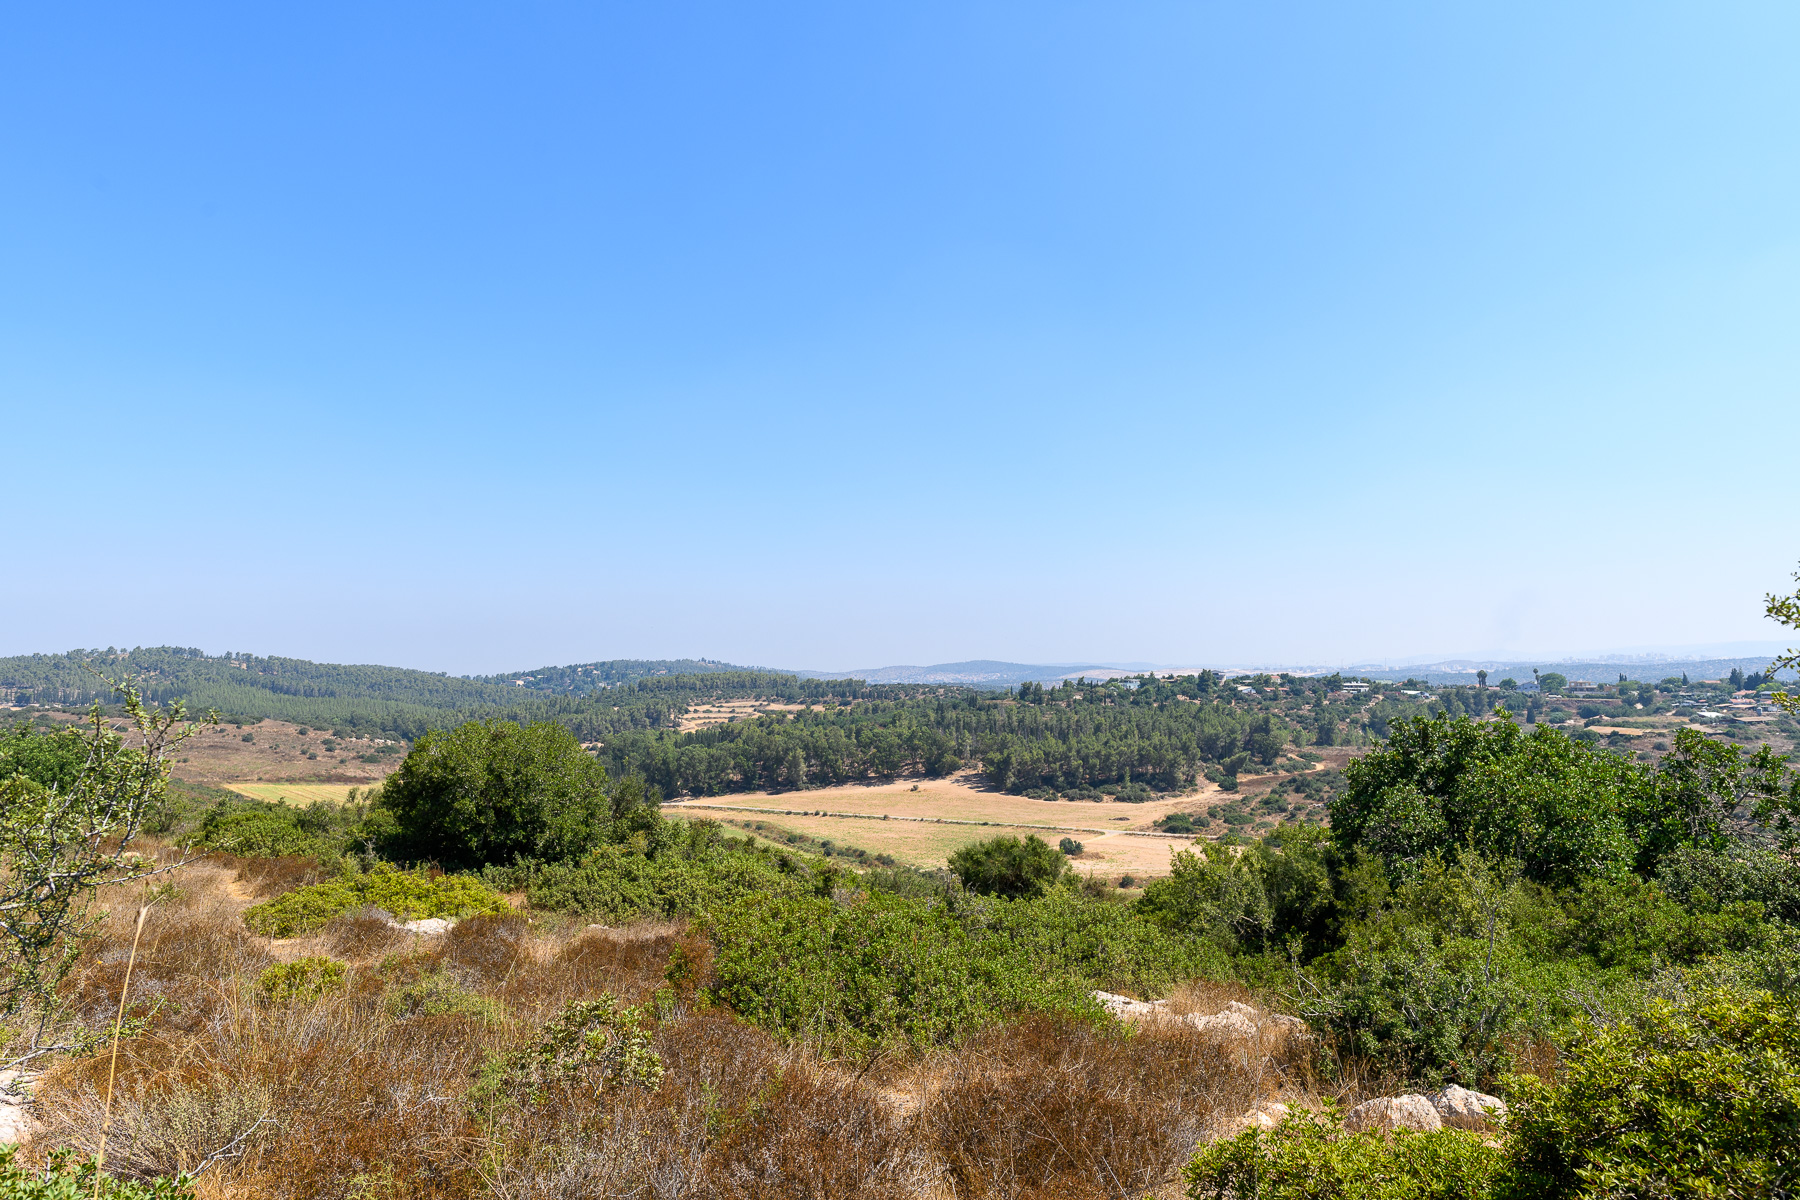 Khirbet Midras - view of the Adullam Grove National Park